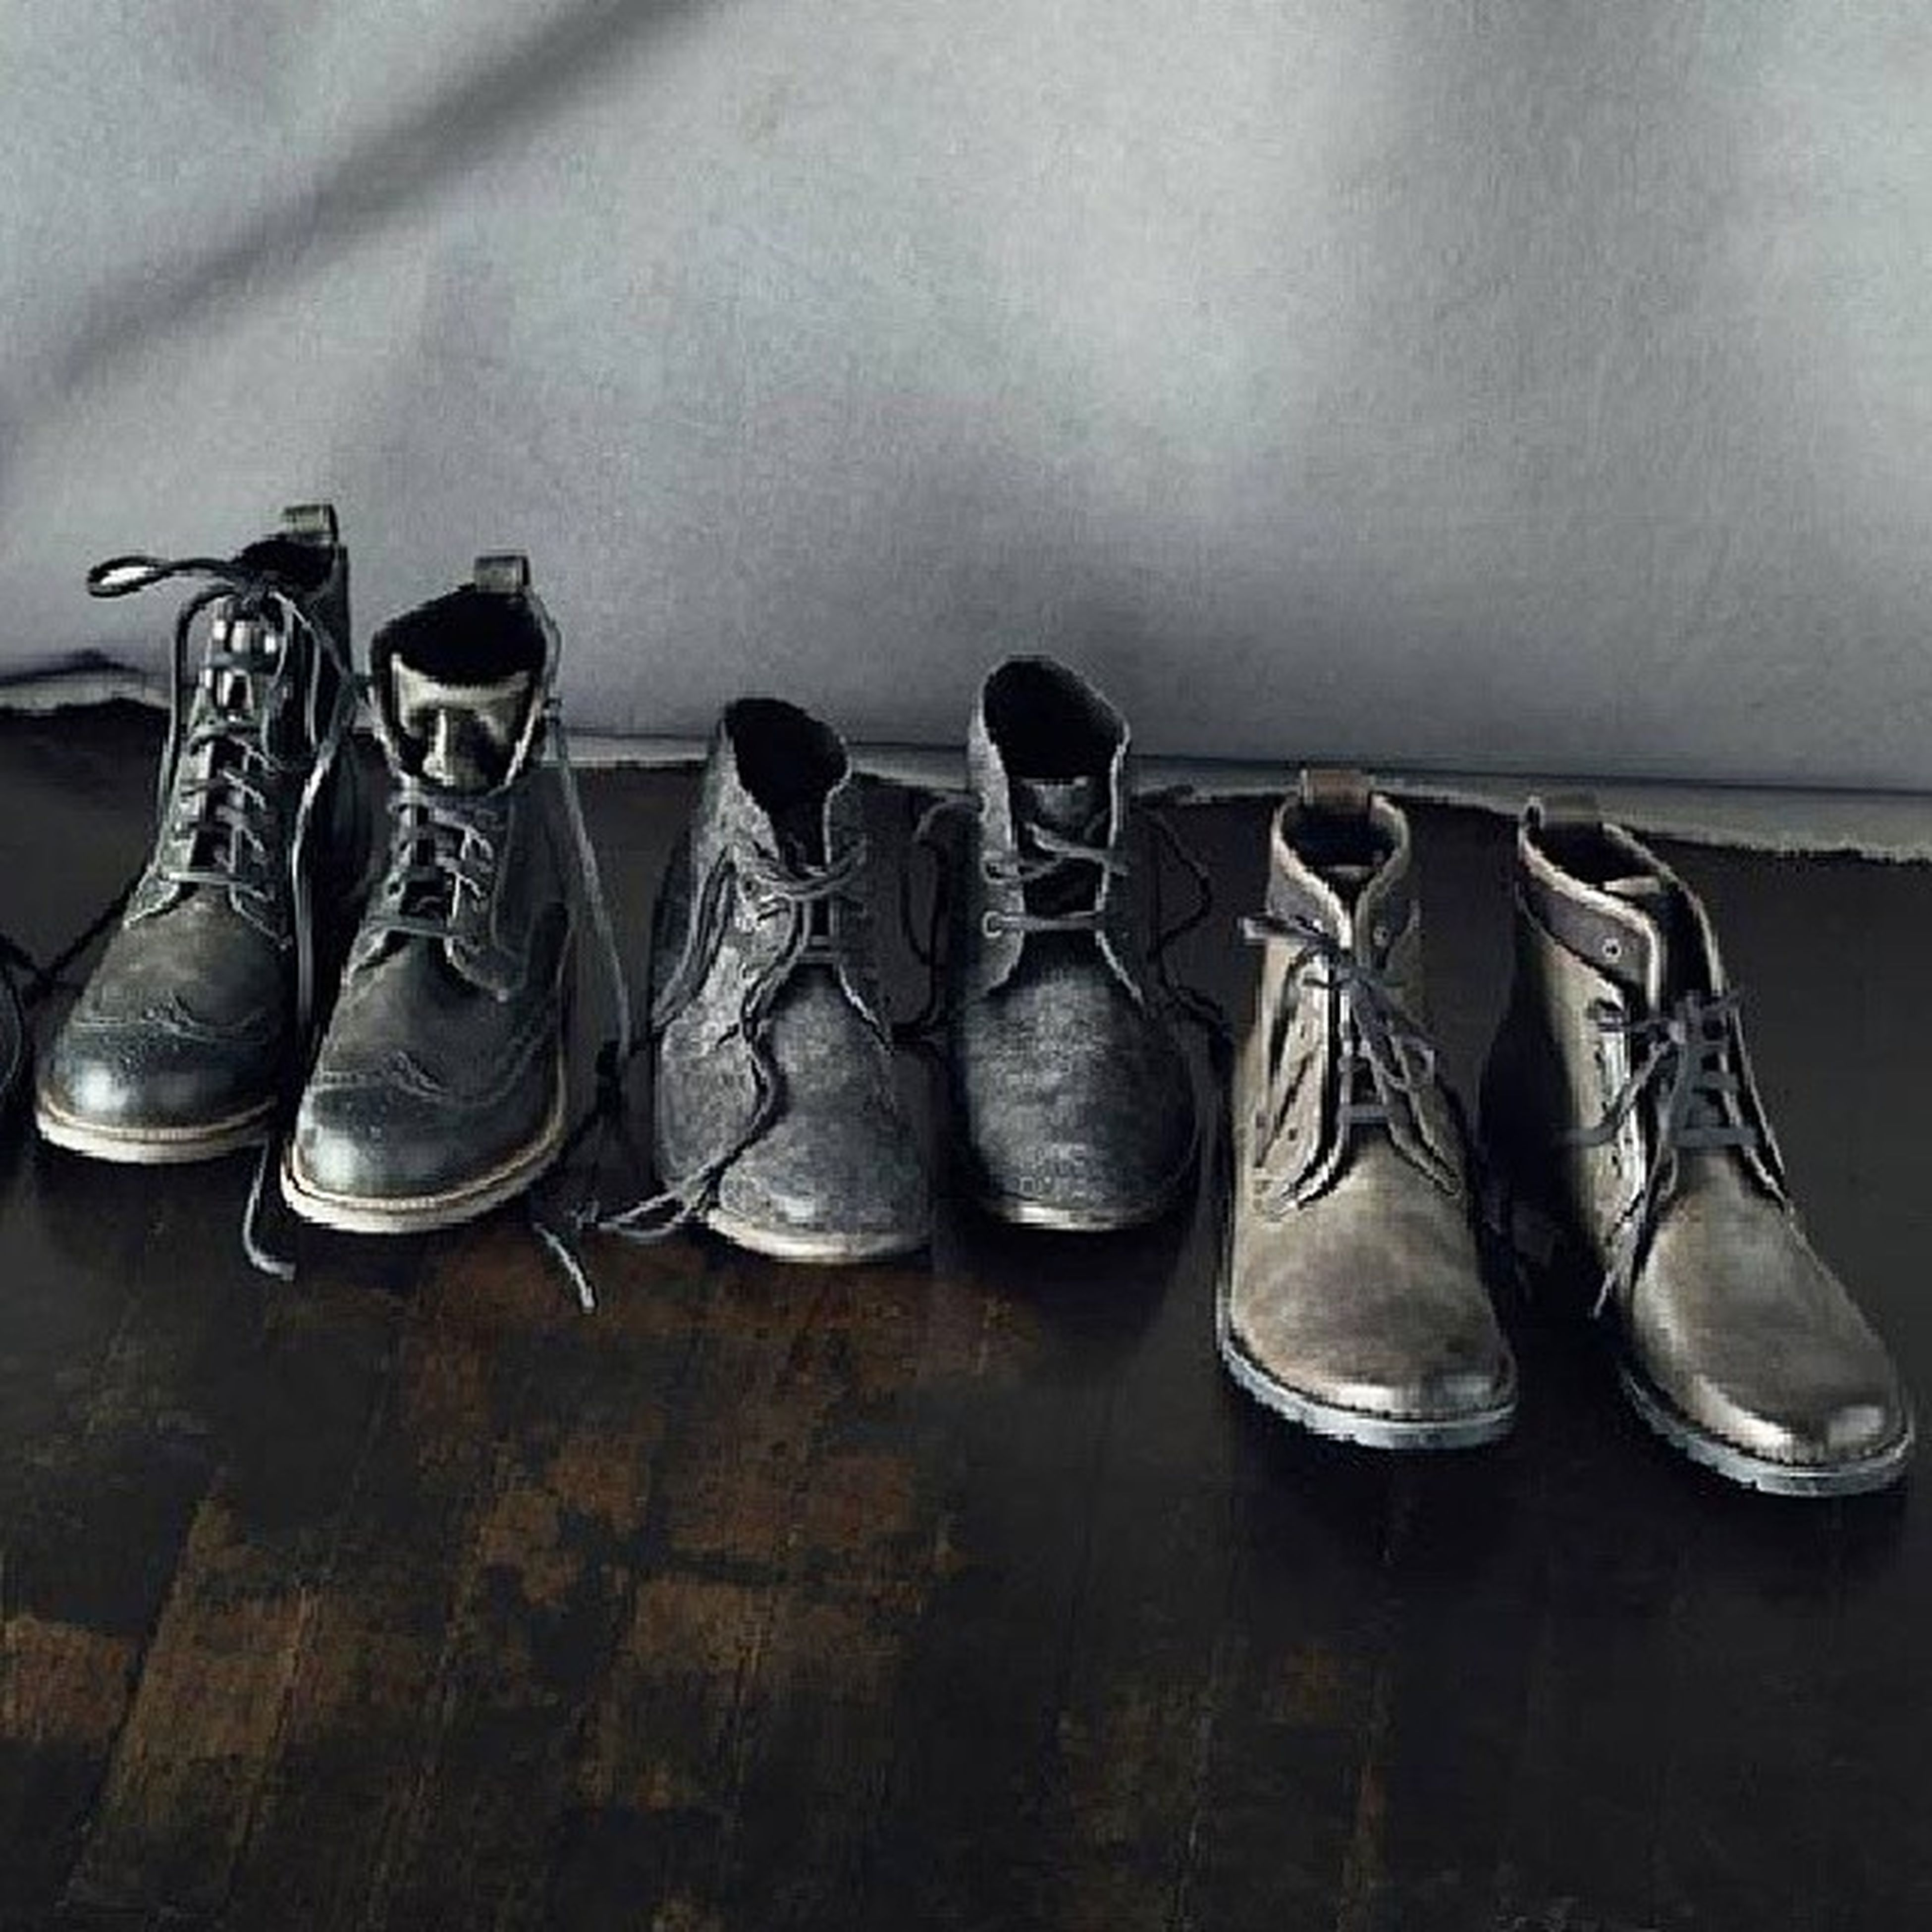 indoors, still life, table, shoe, variation, pair, close-up, fashion, absence, arrangement, side by side, high angle view, large group of objects, choice, group of objects, footwear, no people, wood - material, wall - building feature, two objects